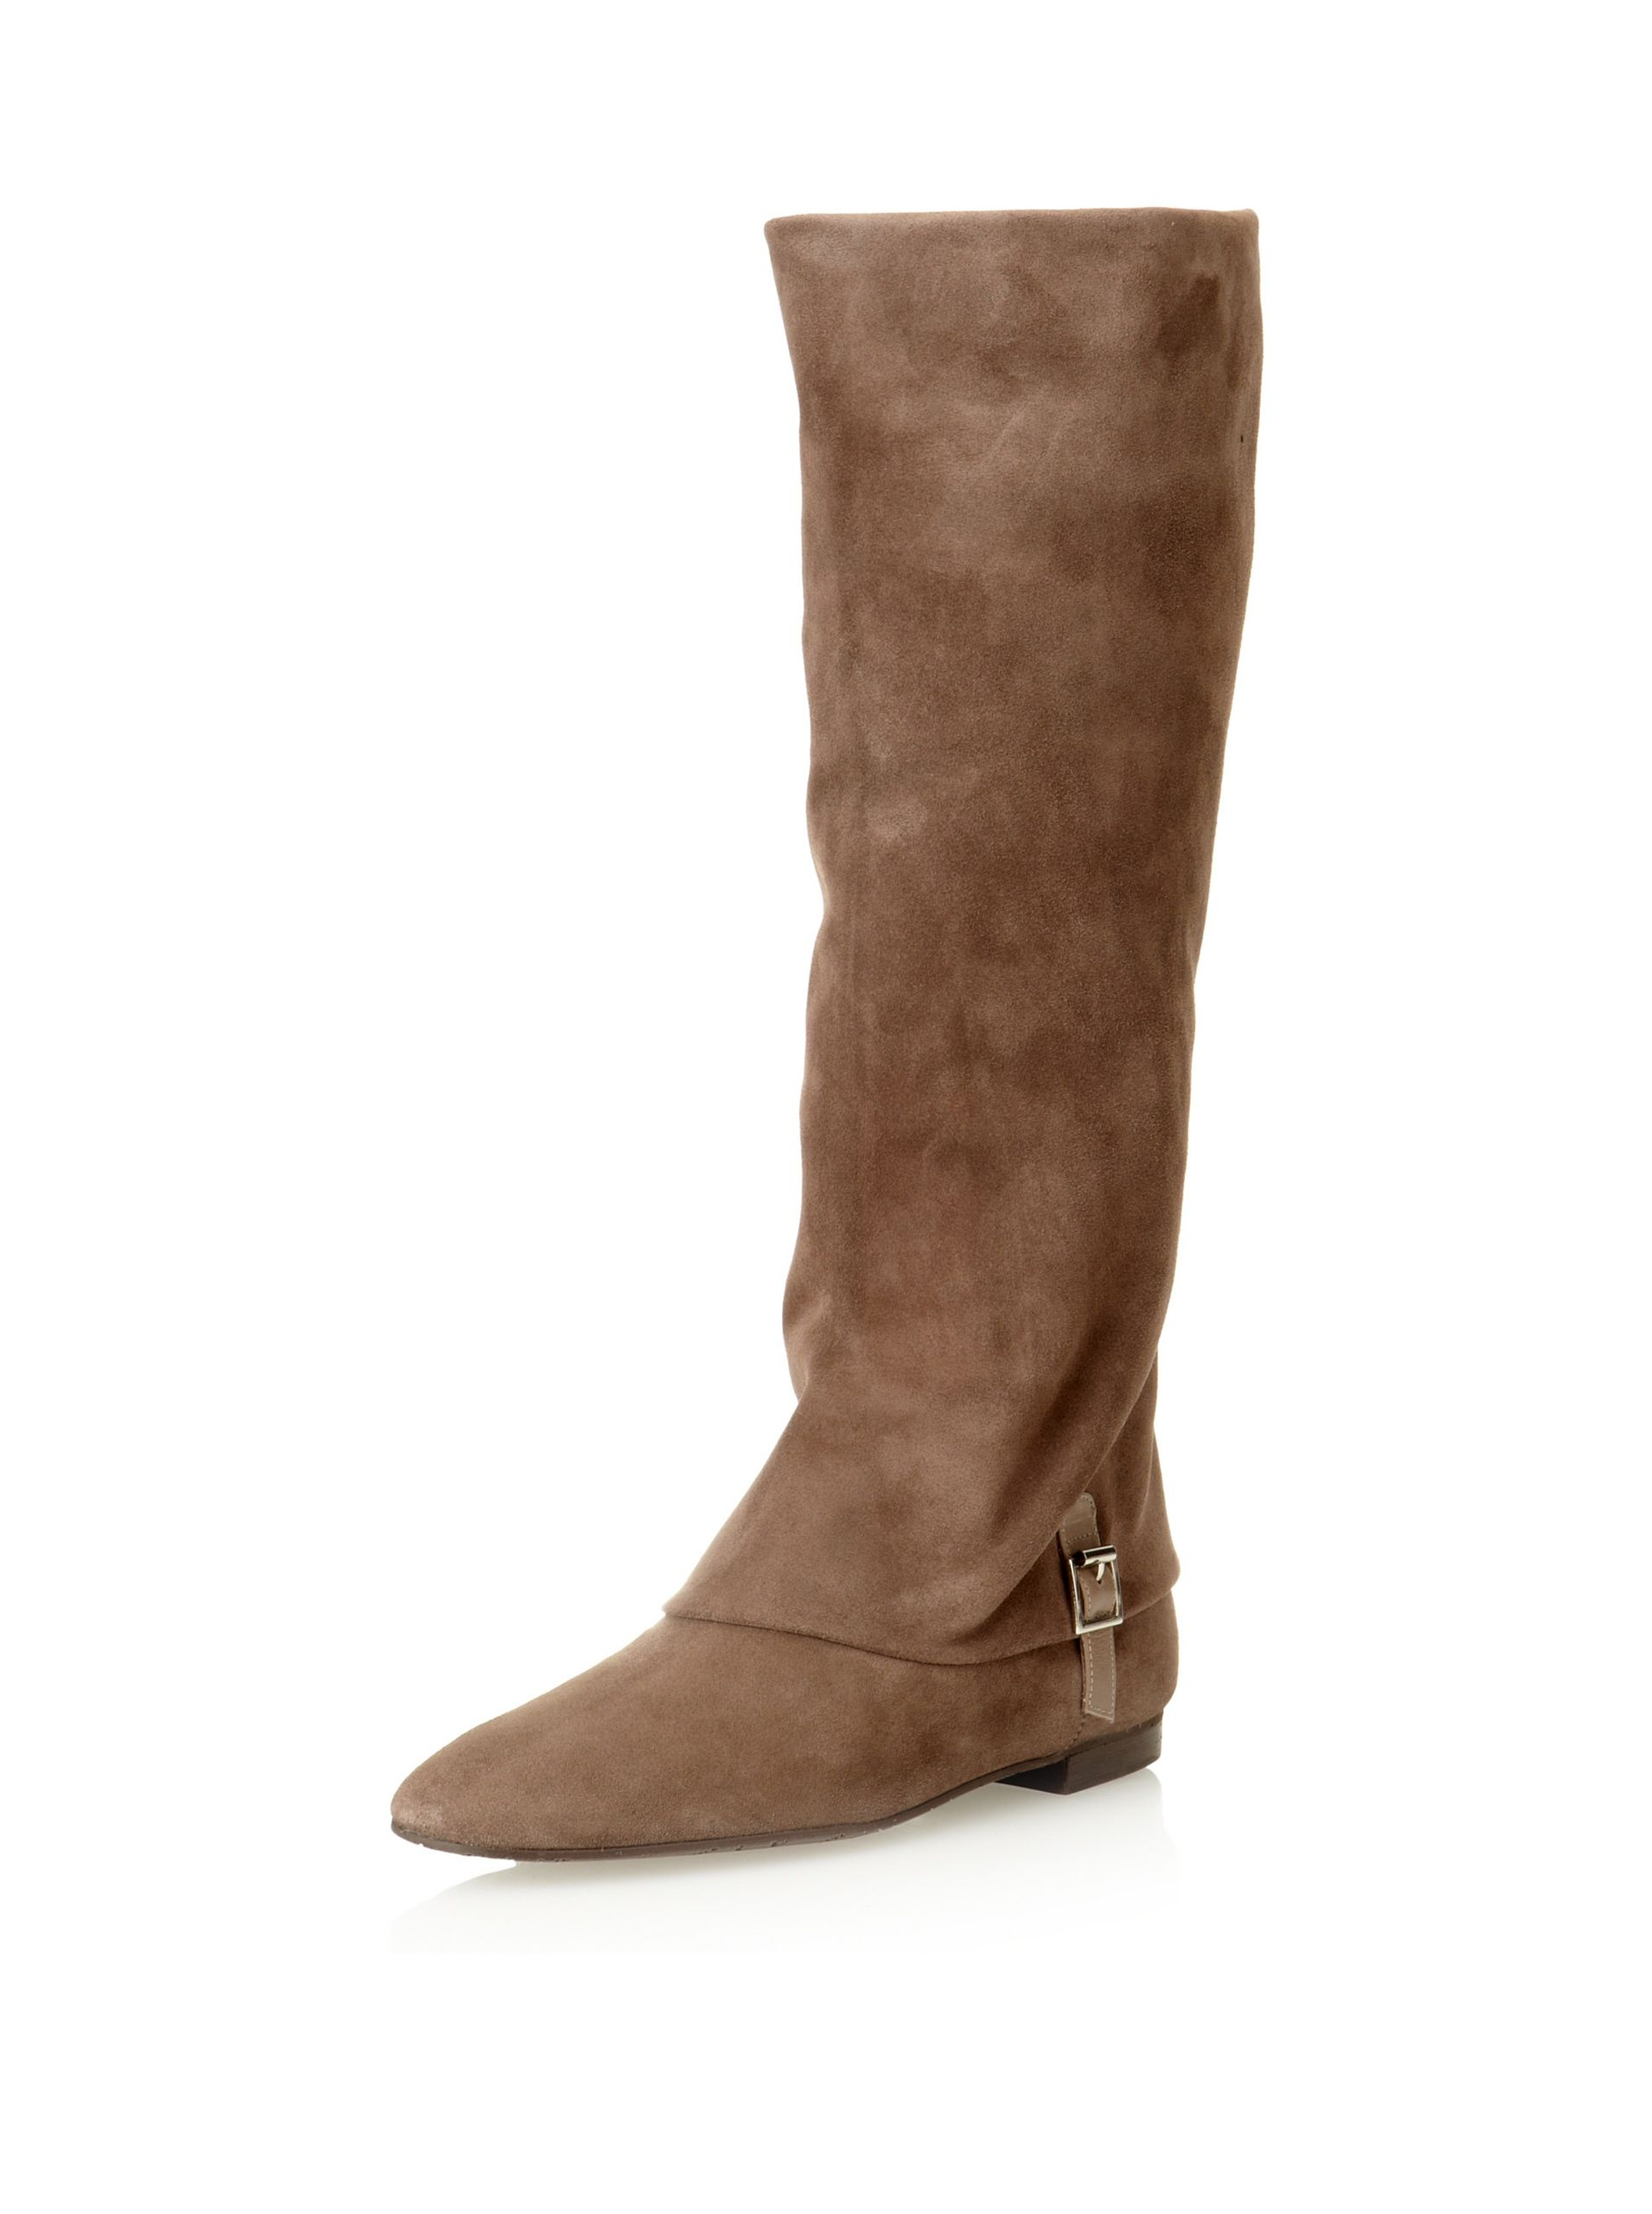 Pin by Lucy Chan on Tall Winter Boots | Riding boots, Boots